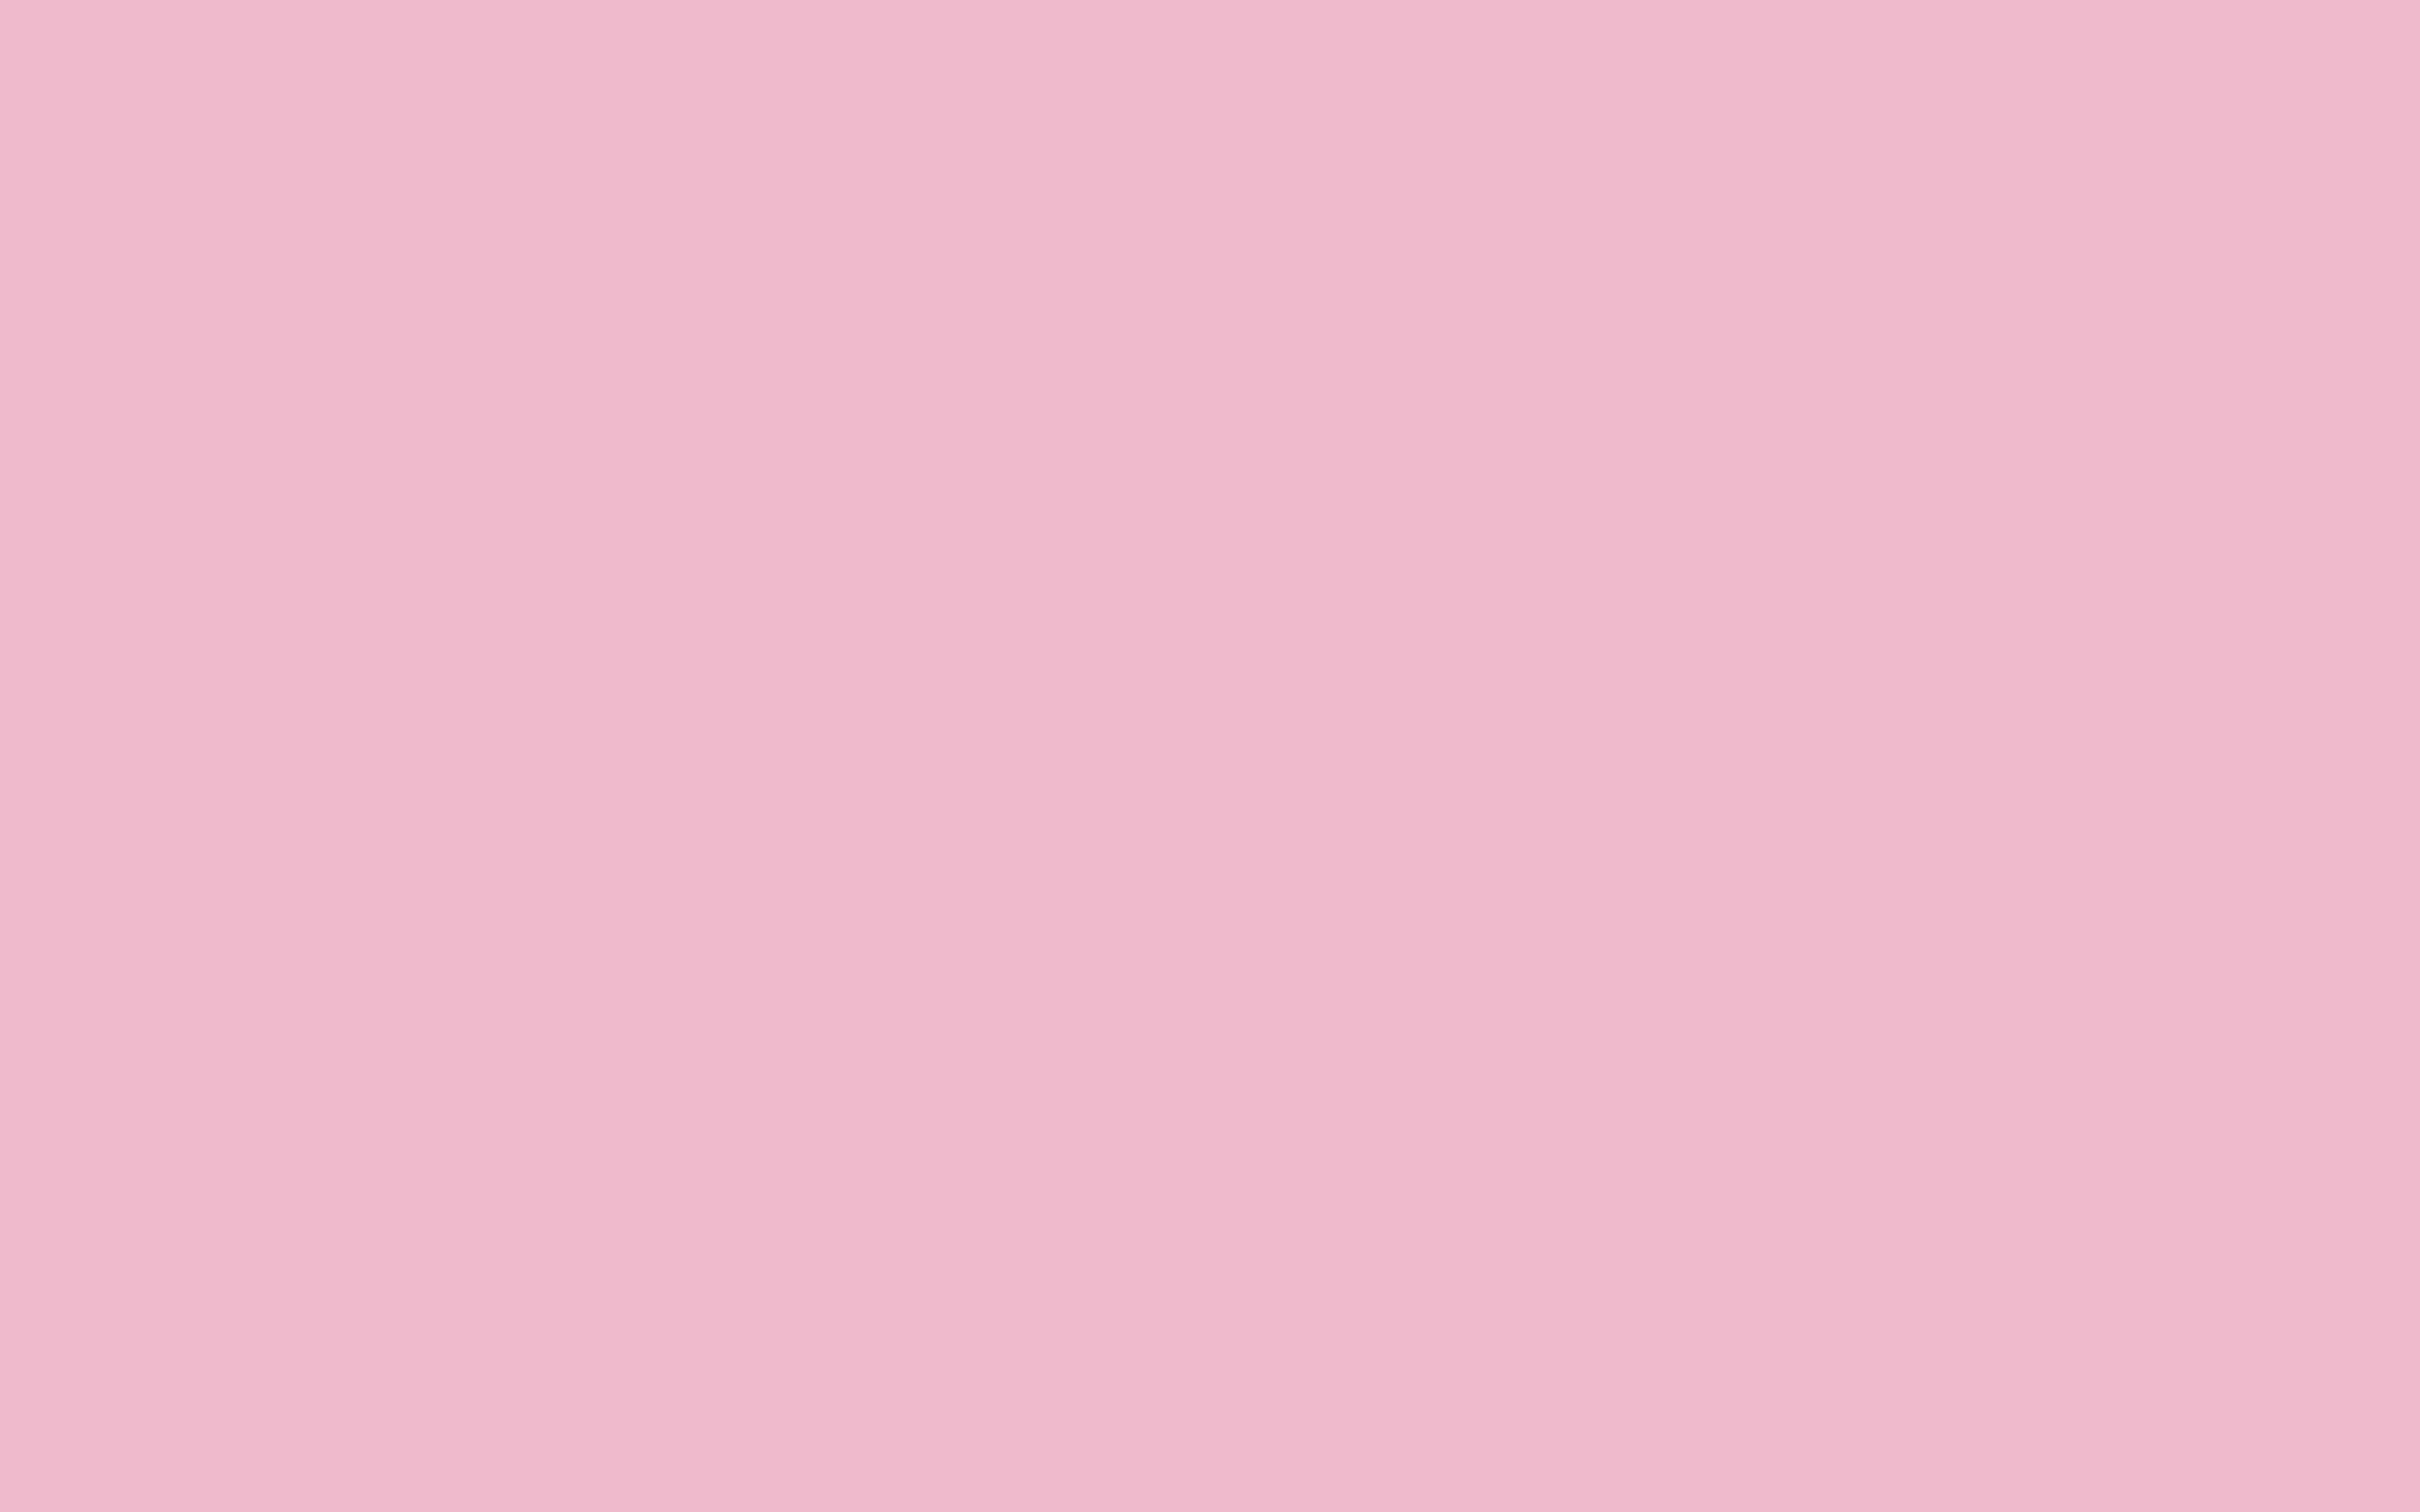 2560x1600 Cameo Pink Solid Color Background